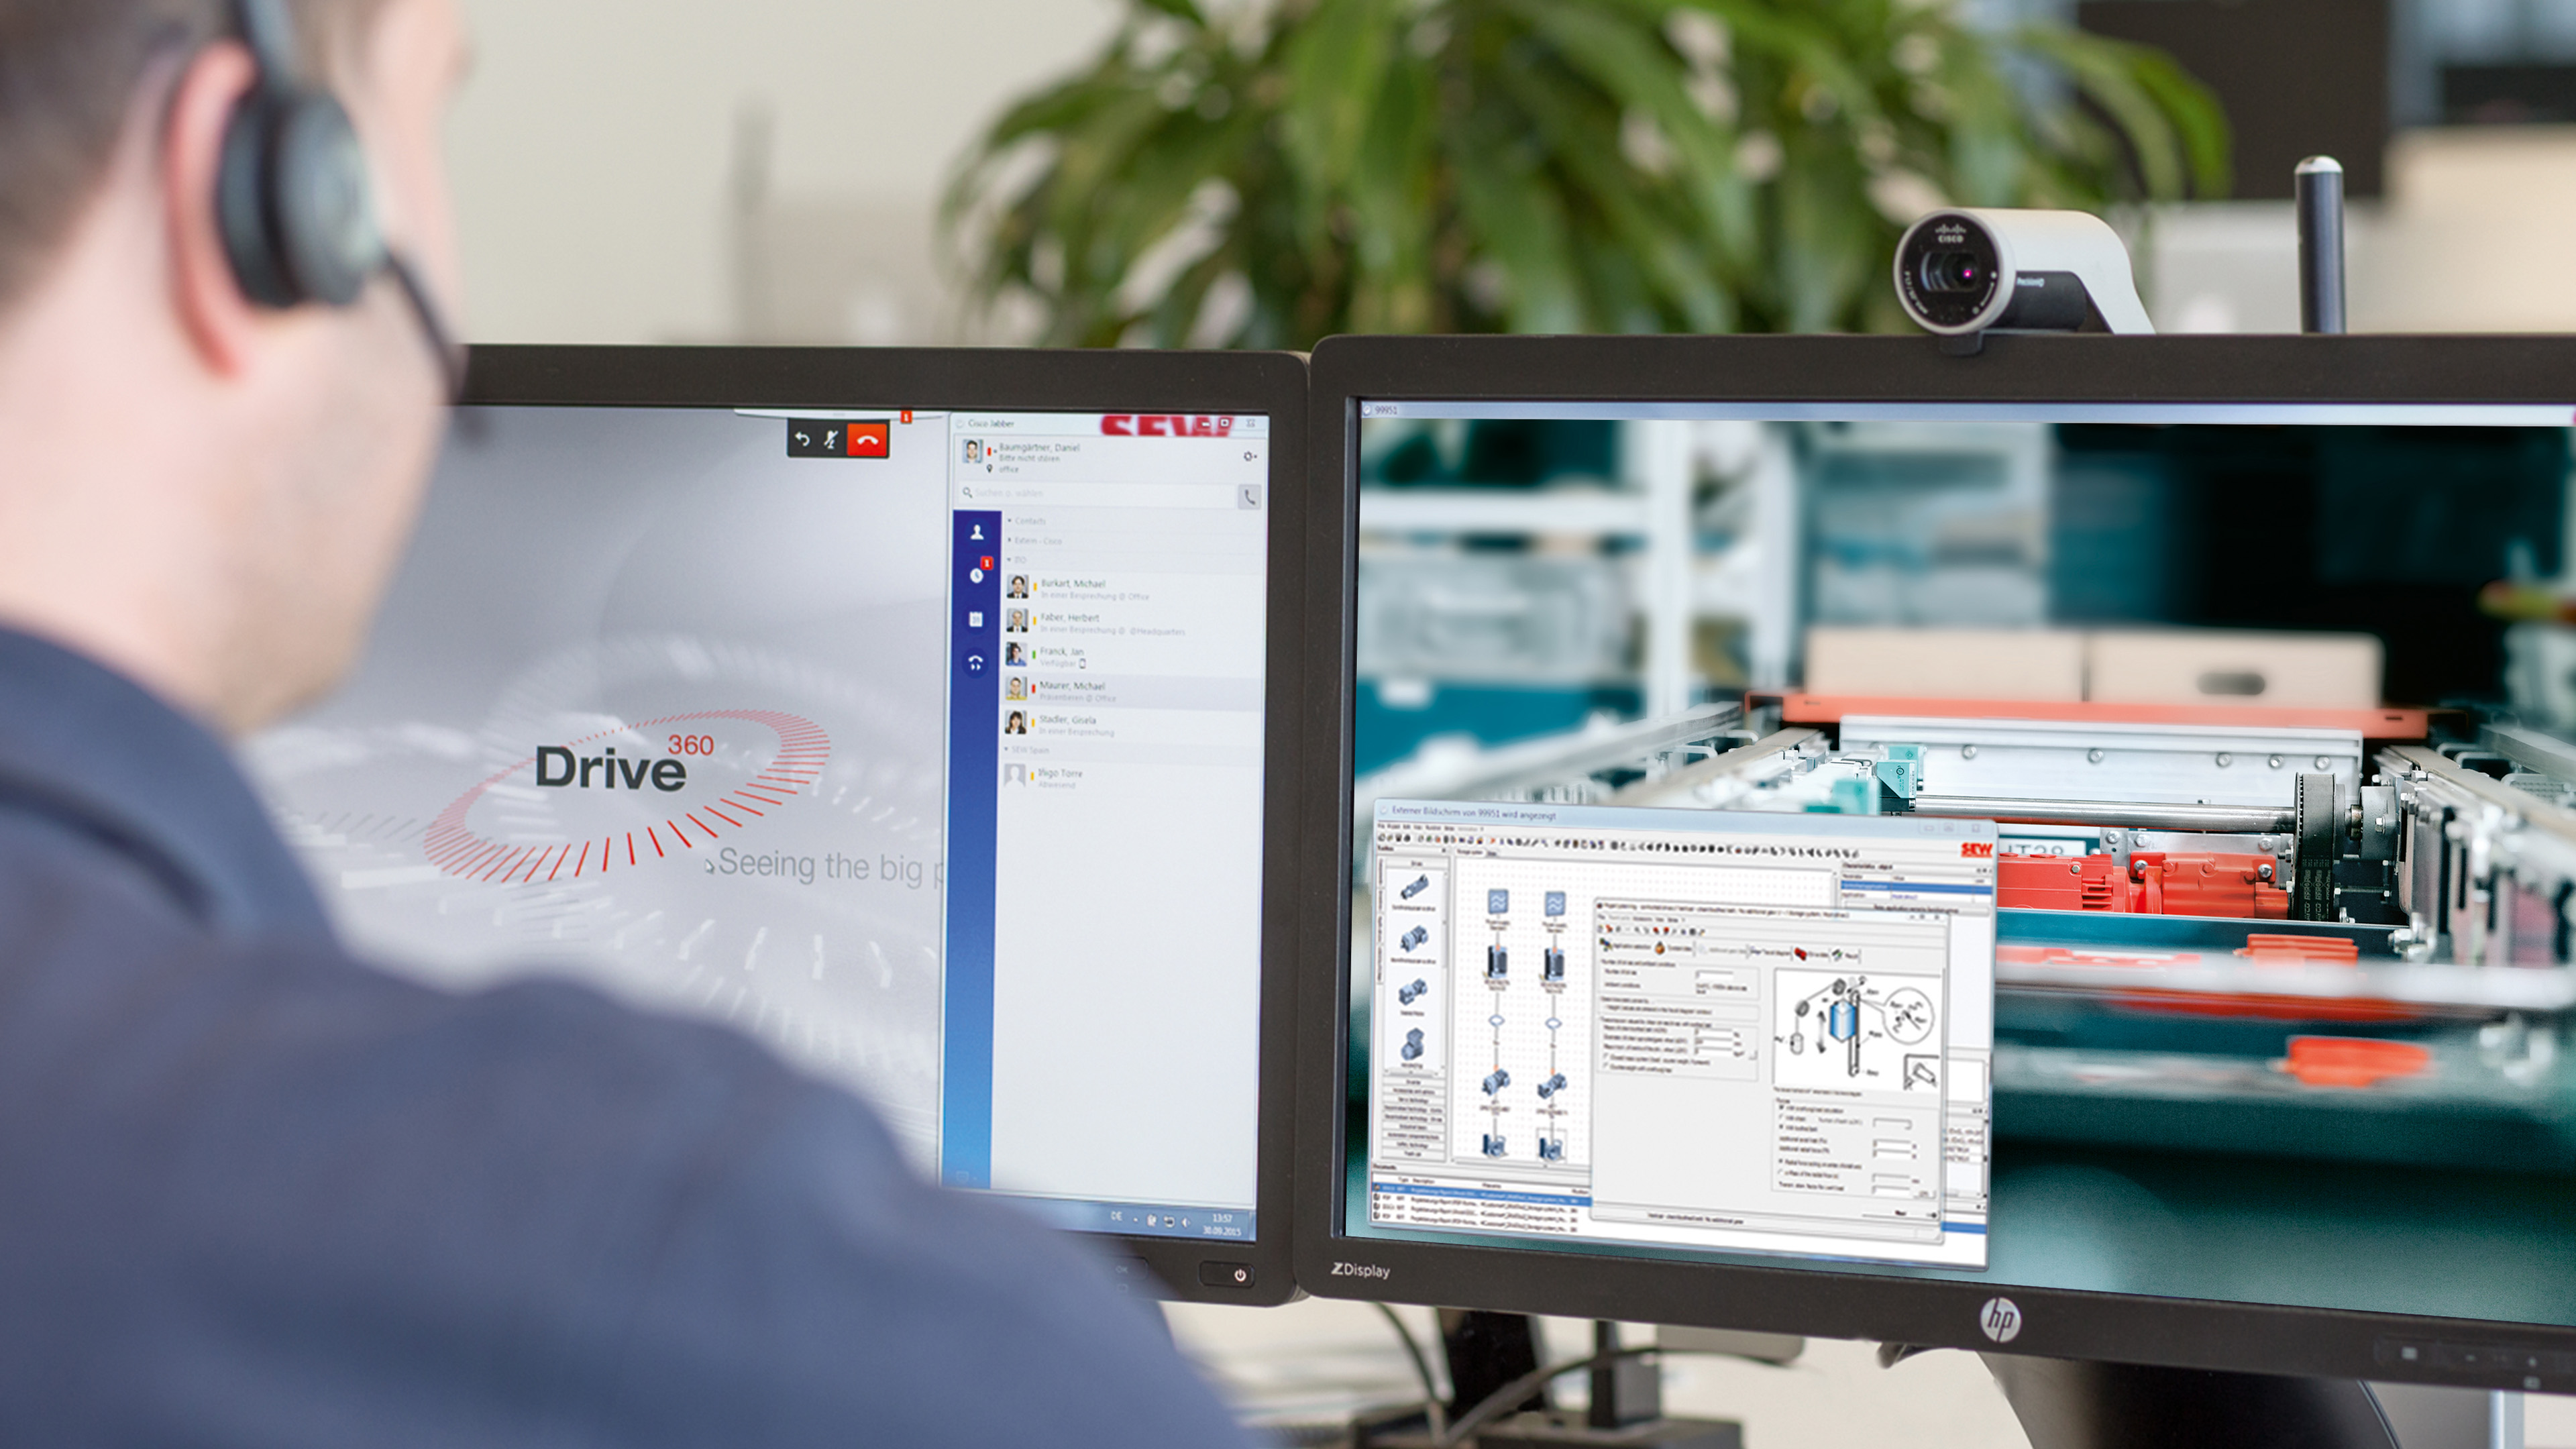 SEW-EURODRIVE employee carrying out remote diagnostics